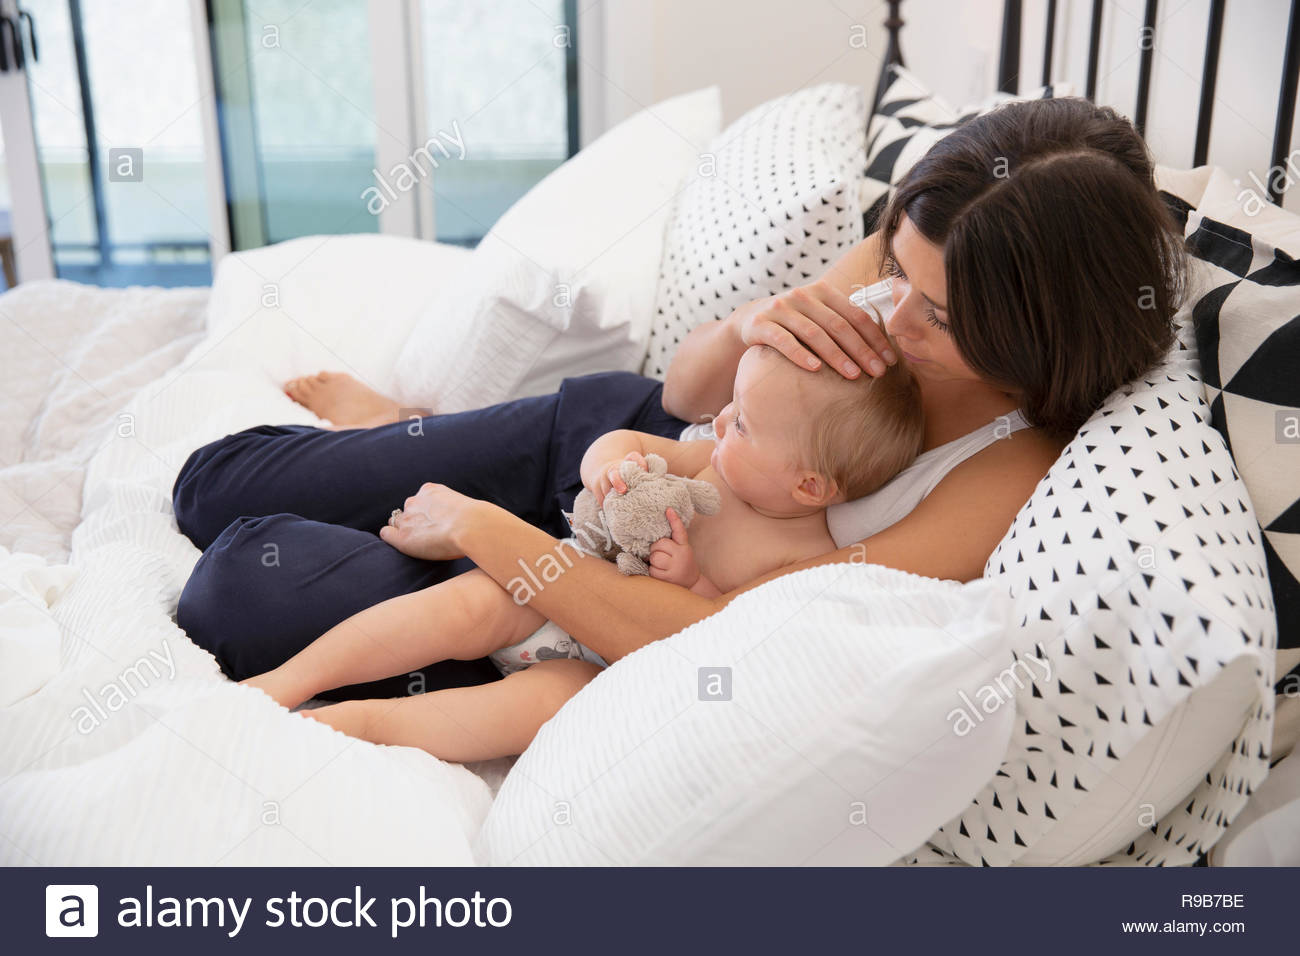 Affectionate mother and baby daughter relaxing on bed - Stock Image